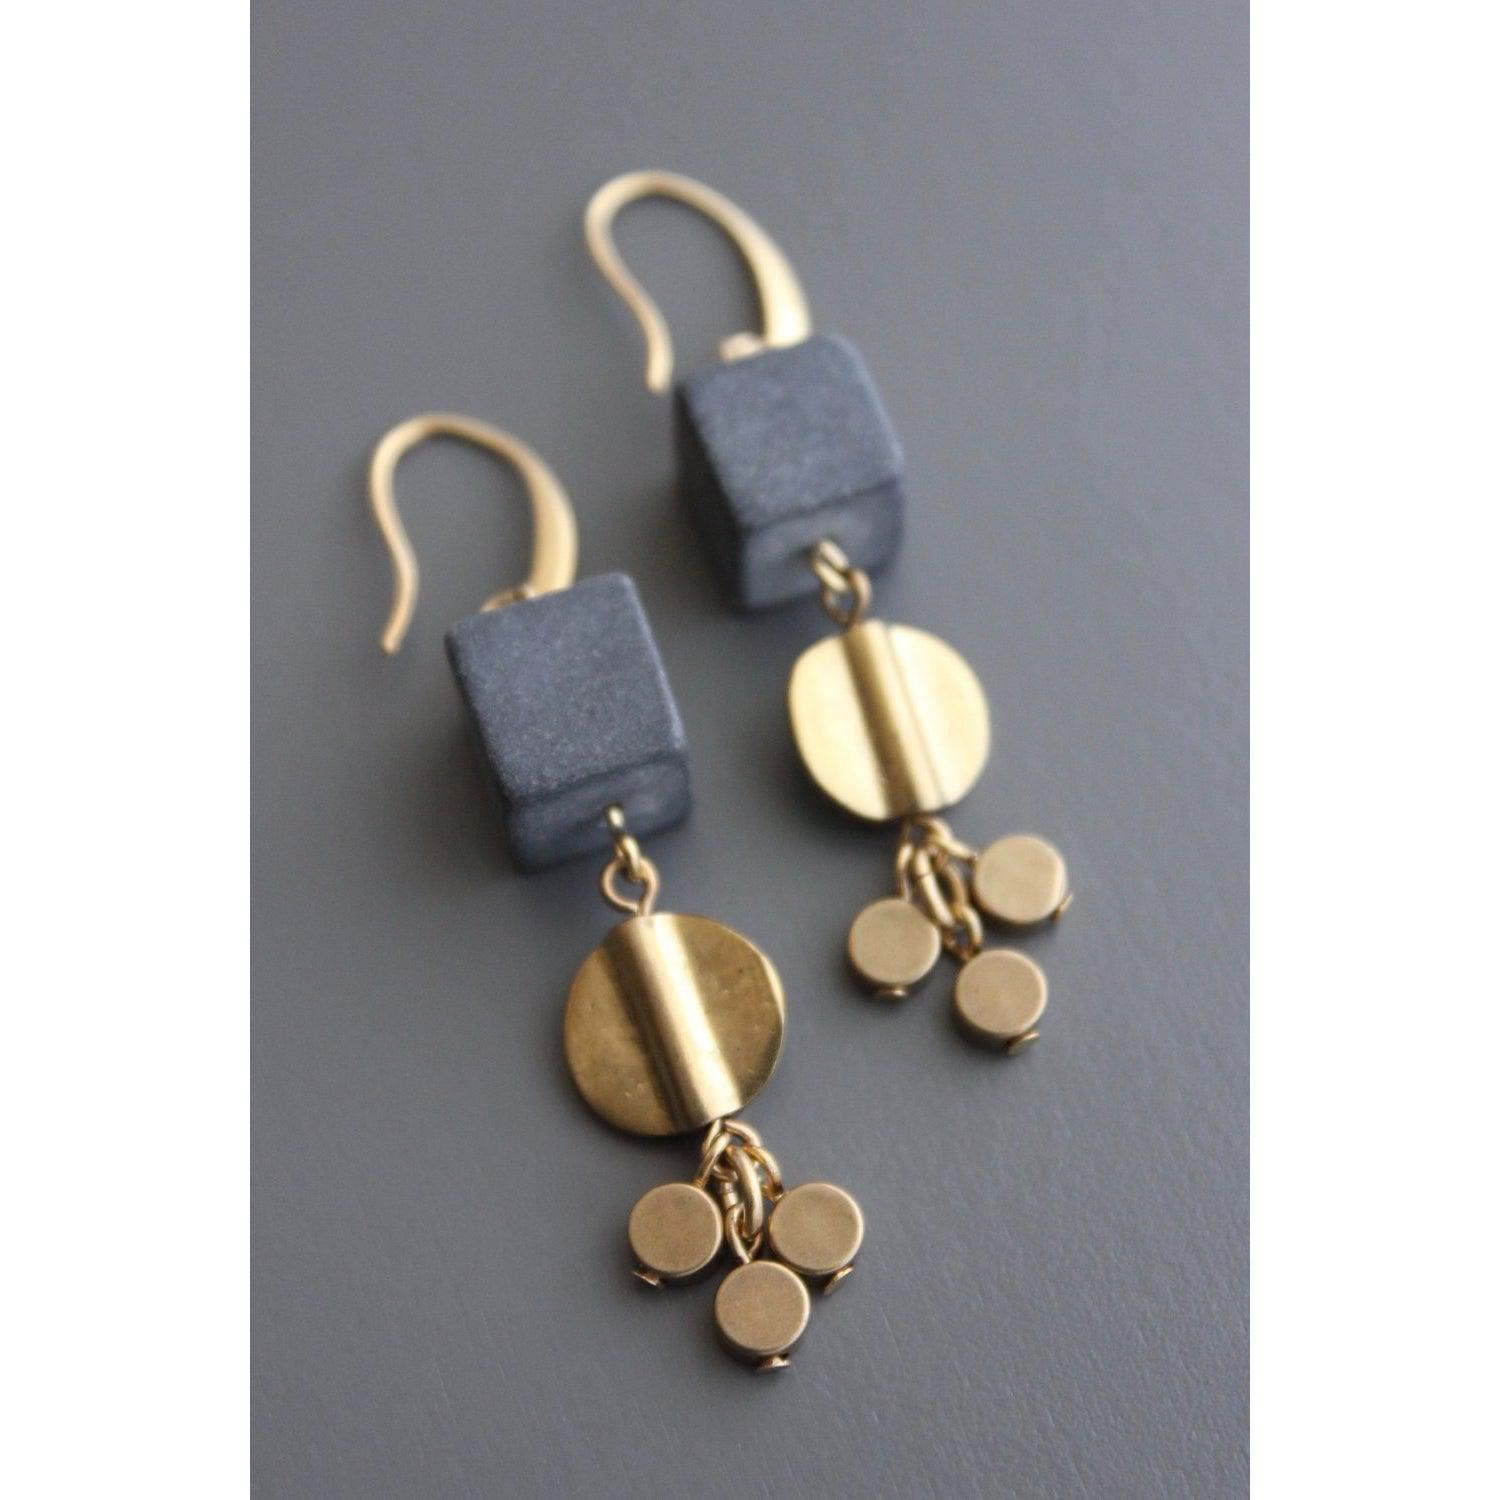 David Aubrey Earrings -TLDE21